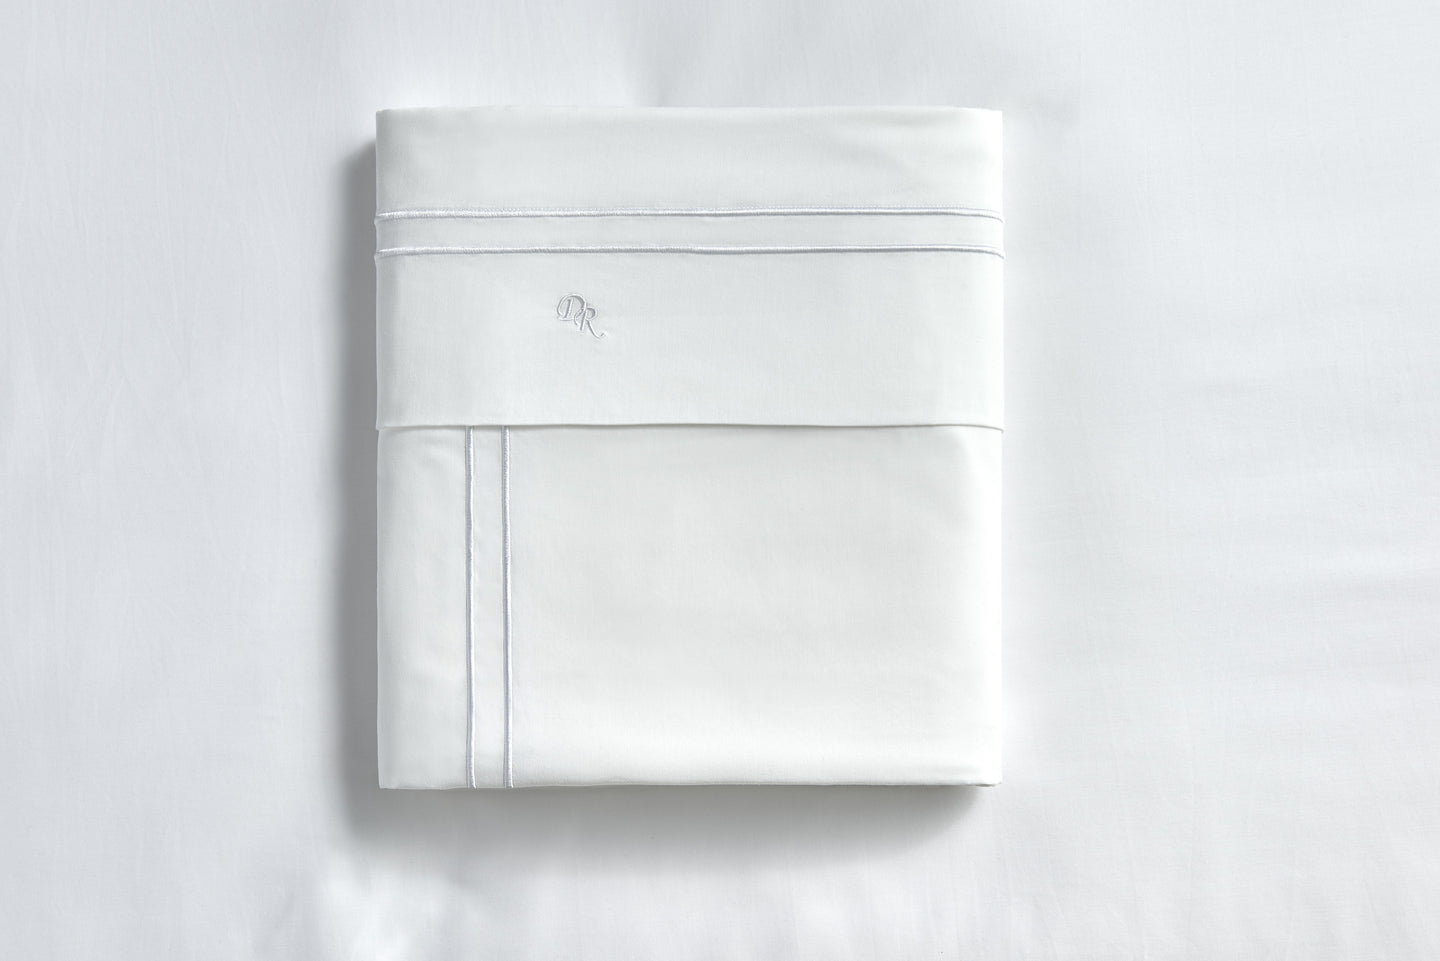 duvet cover zippers easy on 100% cotton hypoallergenic allergy-free cruelty free oeko tex tested